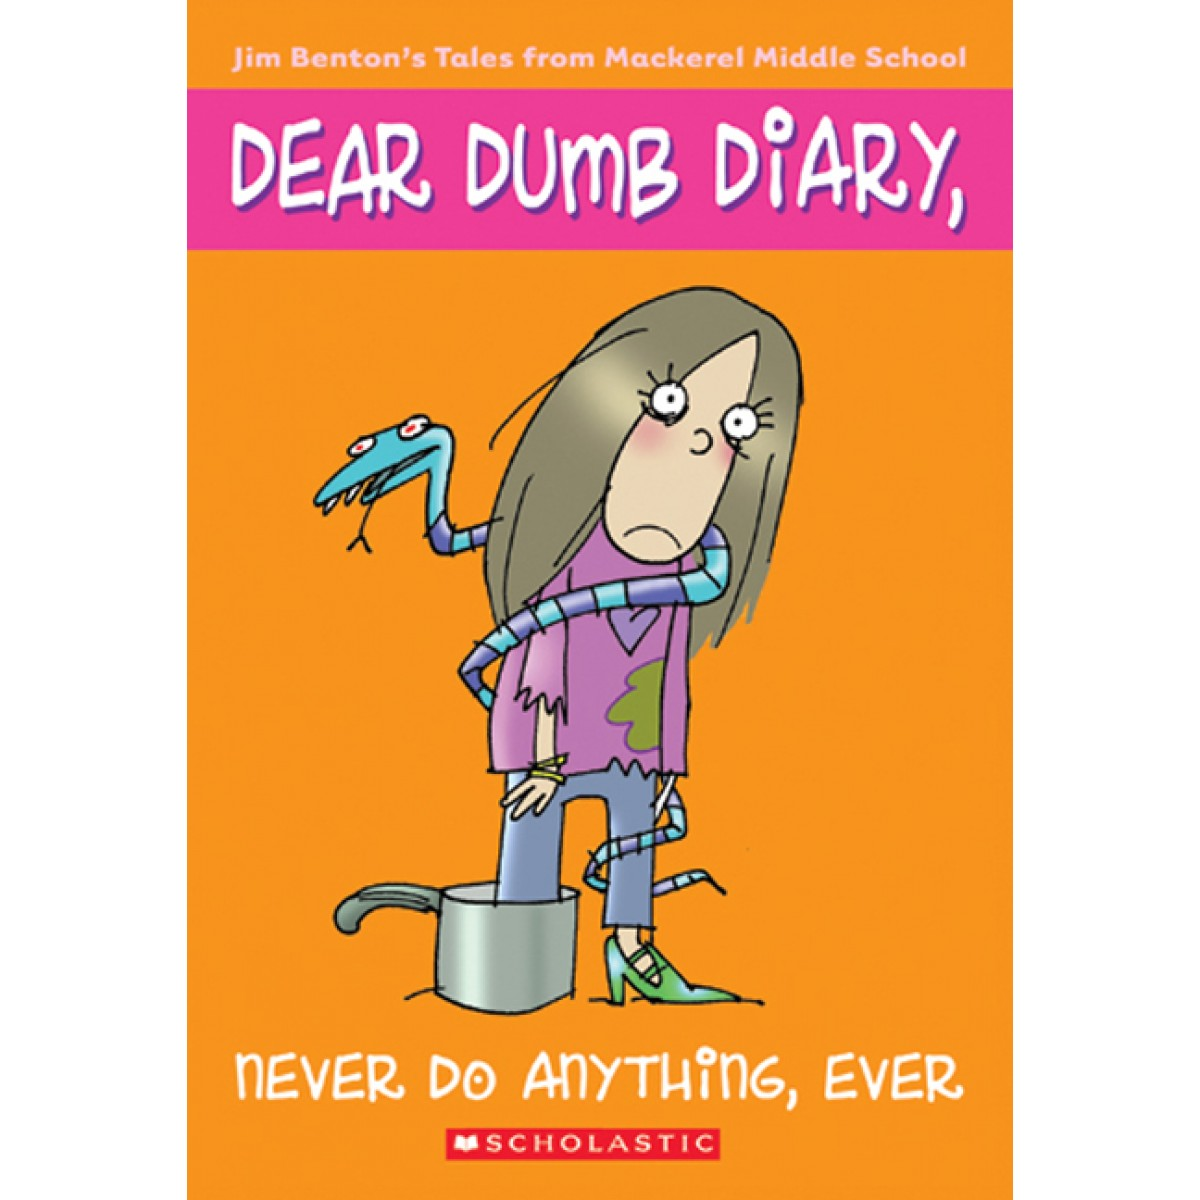 dear dumb diary never underestimate your dumbness book report Dear dumb diary deluxe - dumbness is a dish best served cold price: $1299 exclusive autographed edition dear dumb diary movie - dvd price: $1299 autographed.